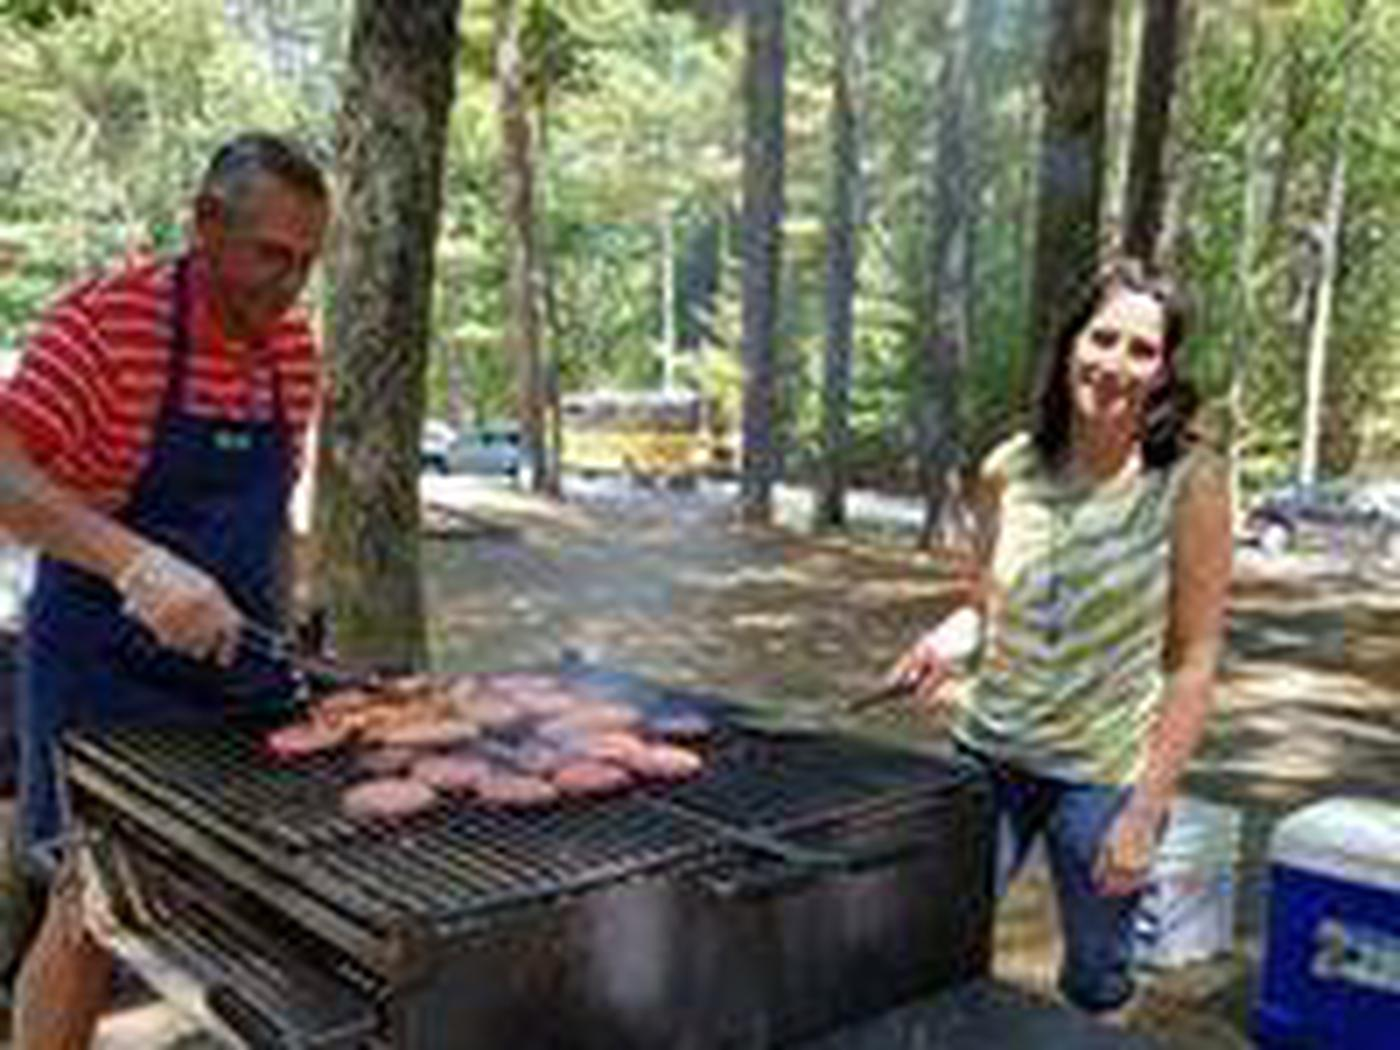 Two adults turning burgers on a large group-size park provided grill with wooded forested surrounded parking lot in background with cars and school bus.Have it your way and enjoy your gathering!